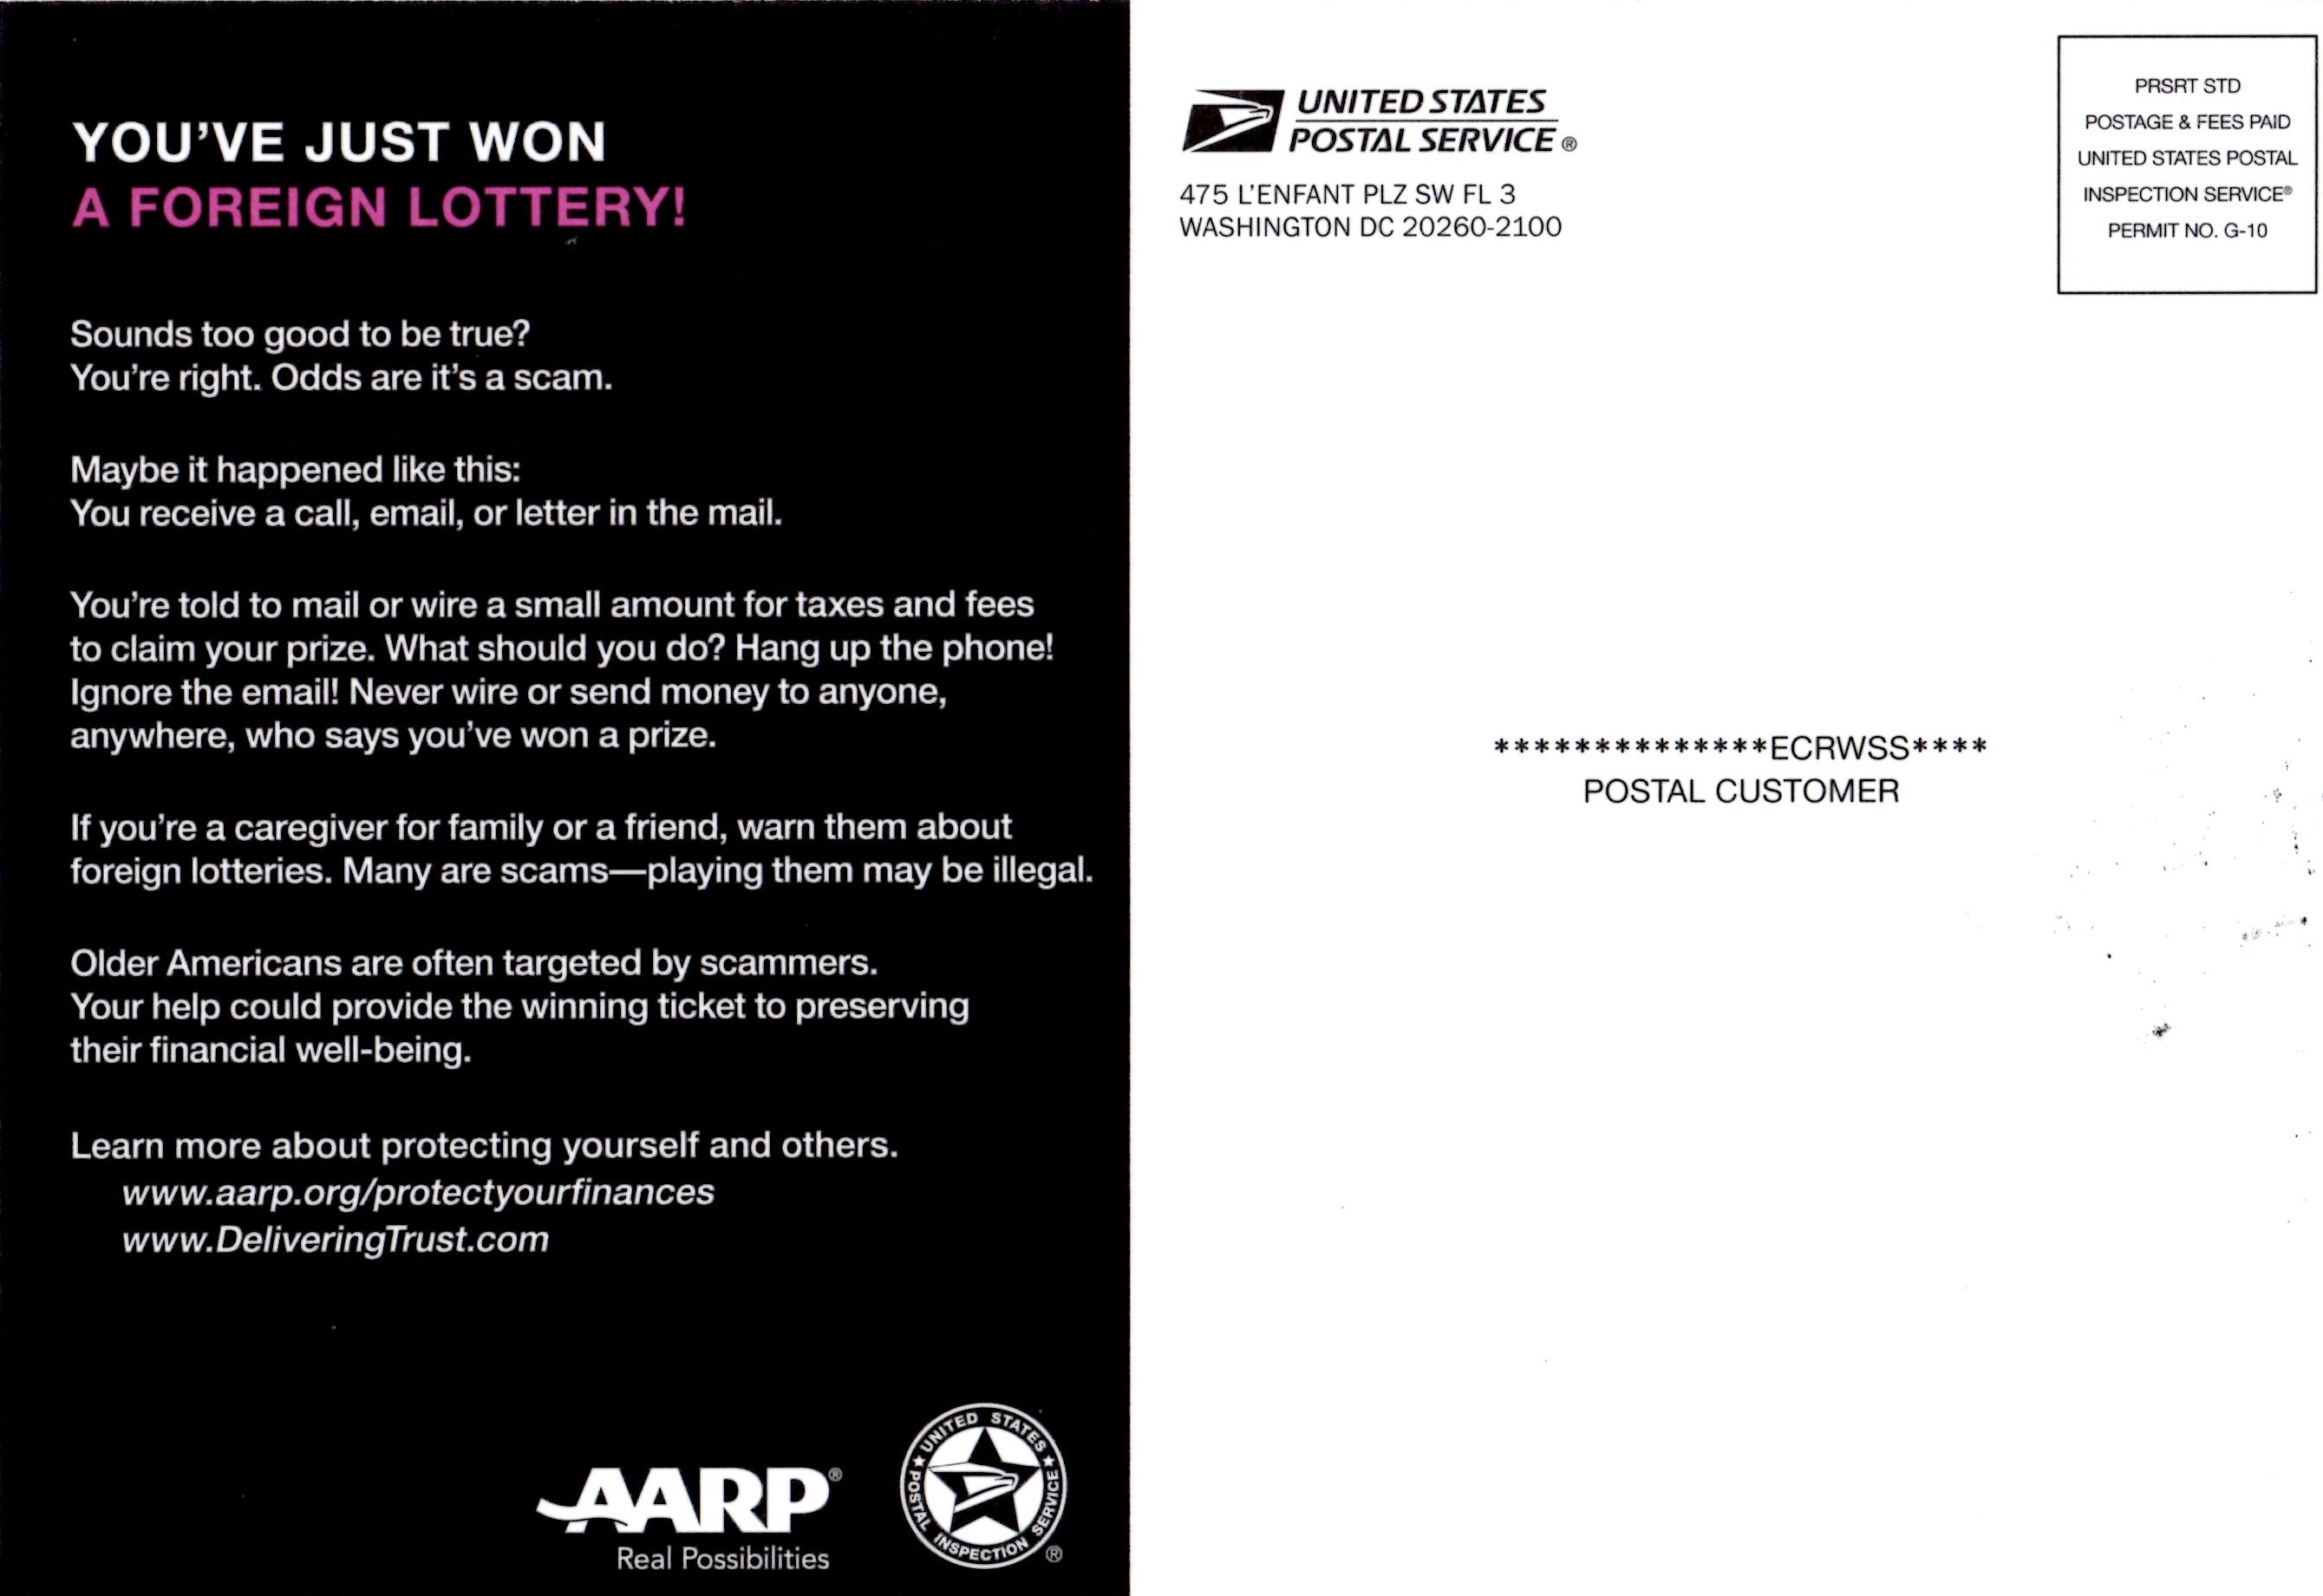 AARP and the U.S. Postal Inspection Service mailed this flyer to U.S. residents